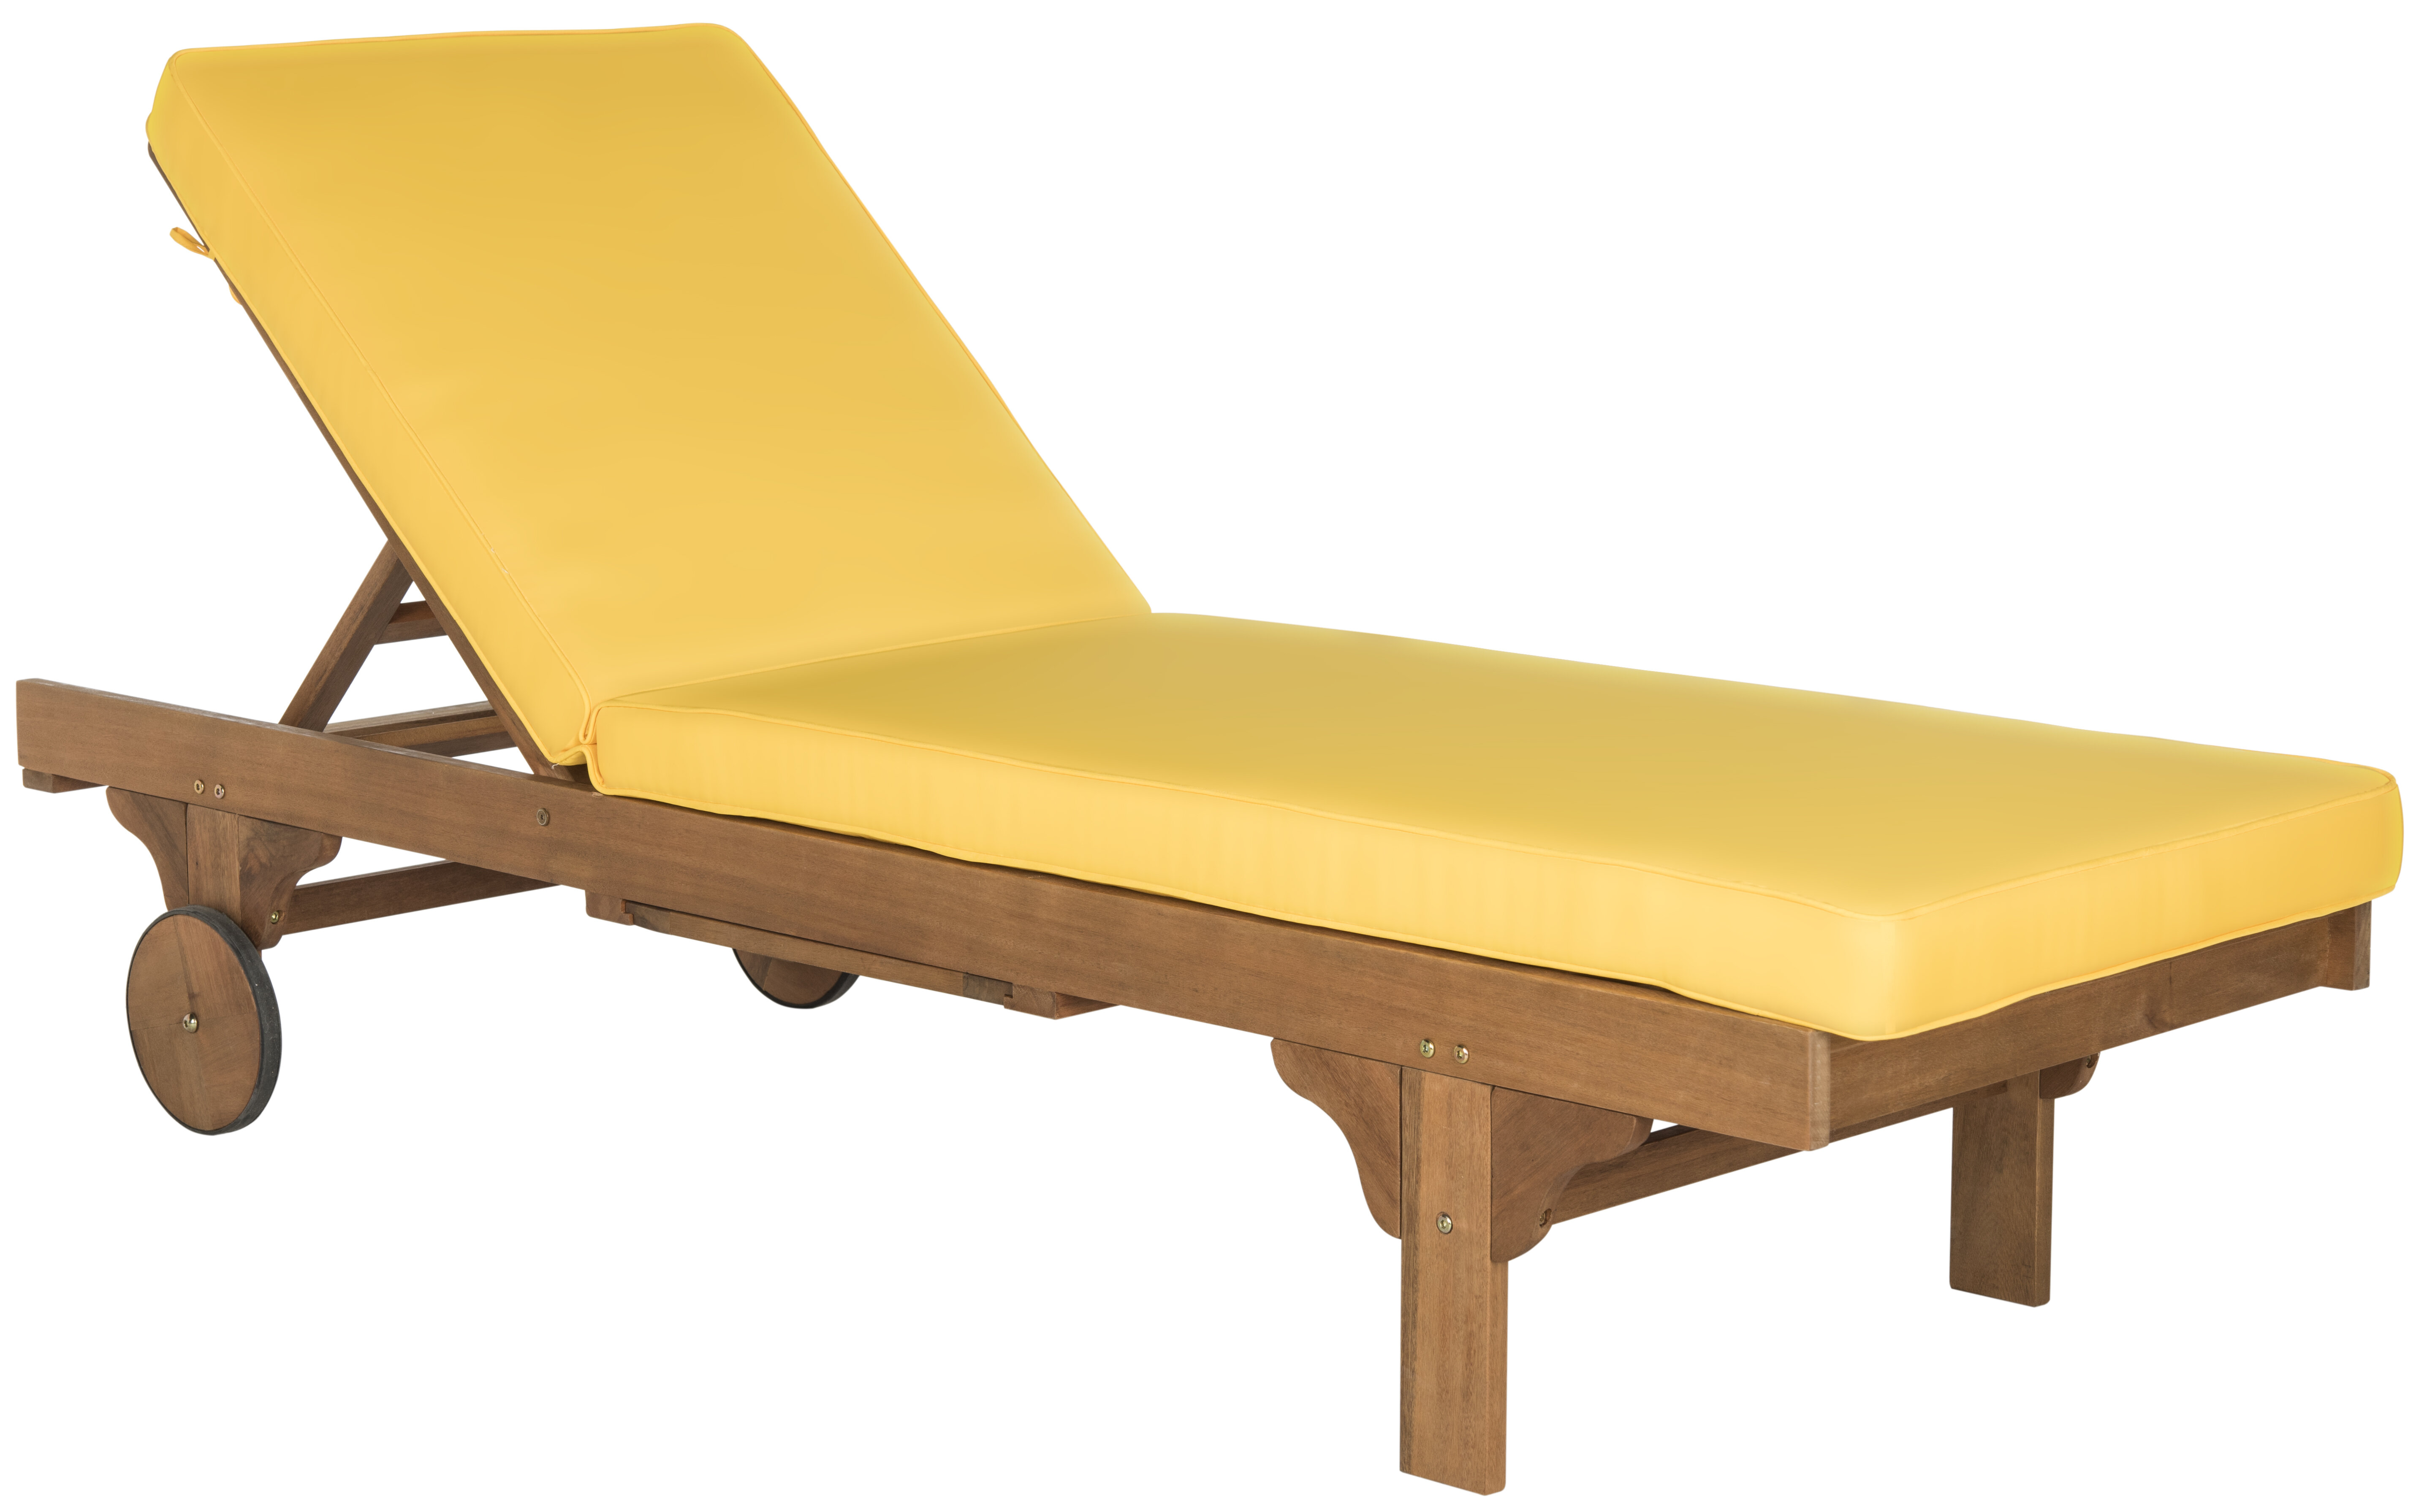 5x Lounge Chair : Cranesville reclining chaise lounge with cushion reviews joss